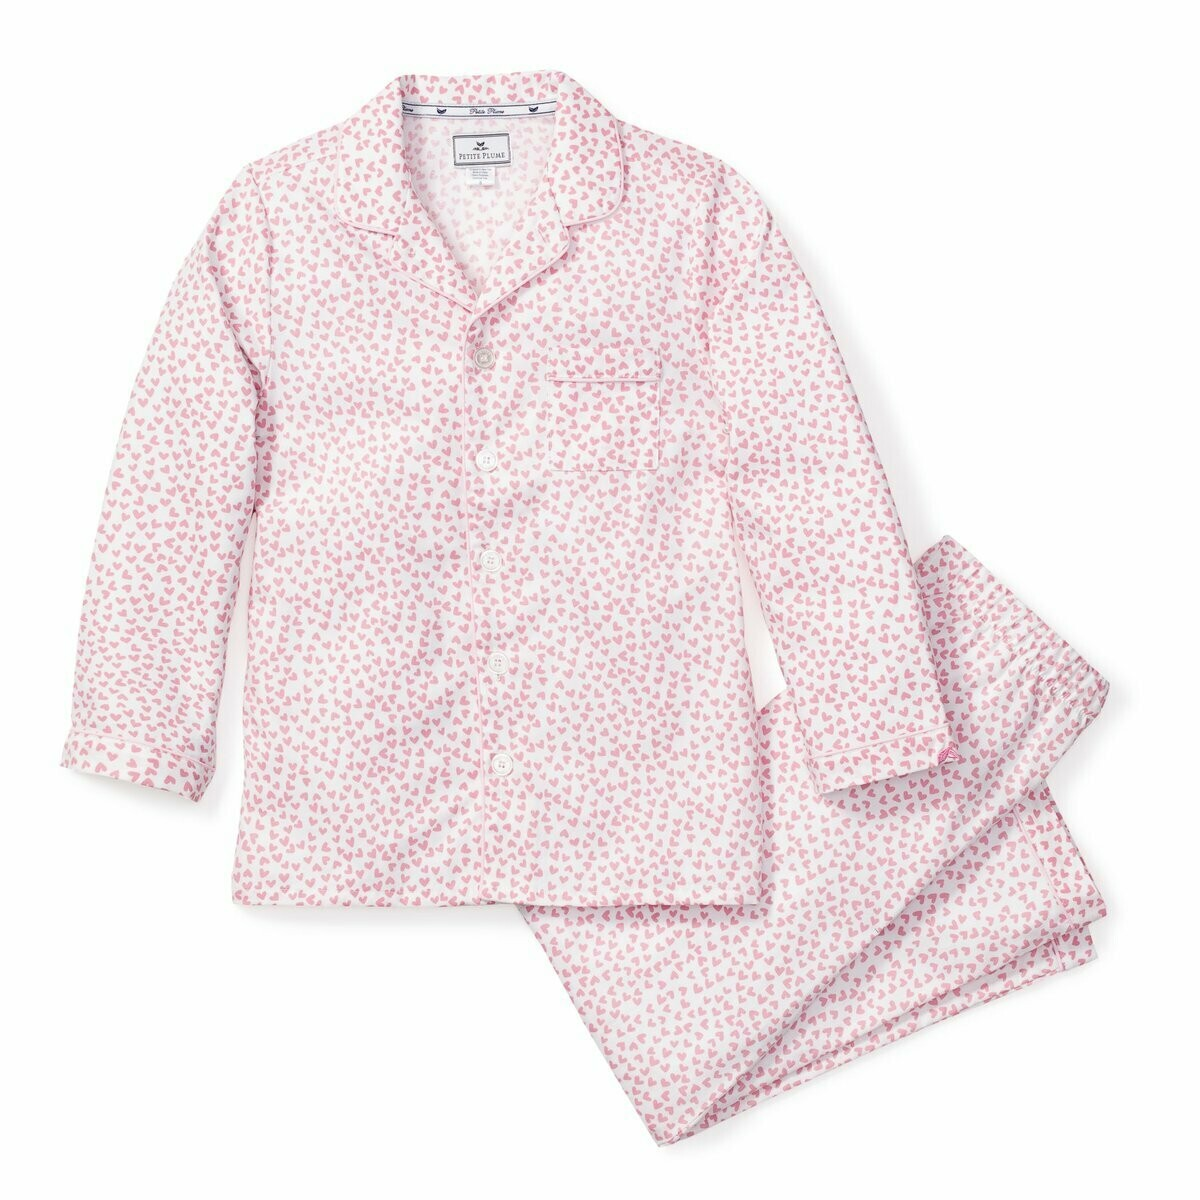 Sweethearts Children's Pajamas